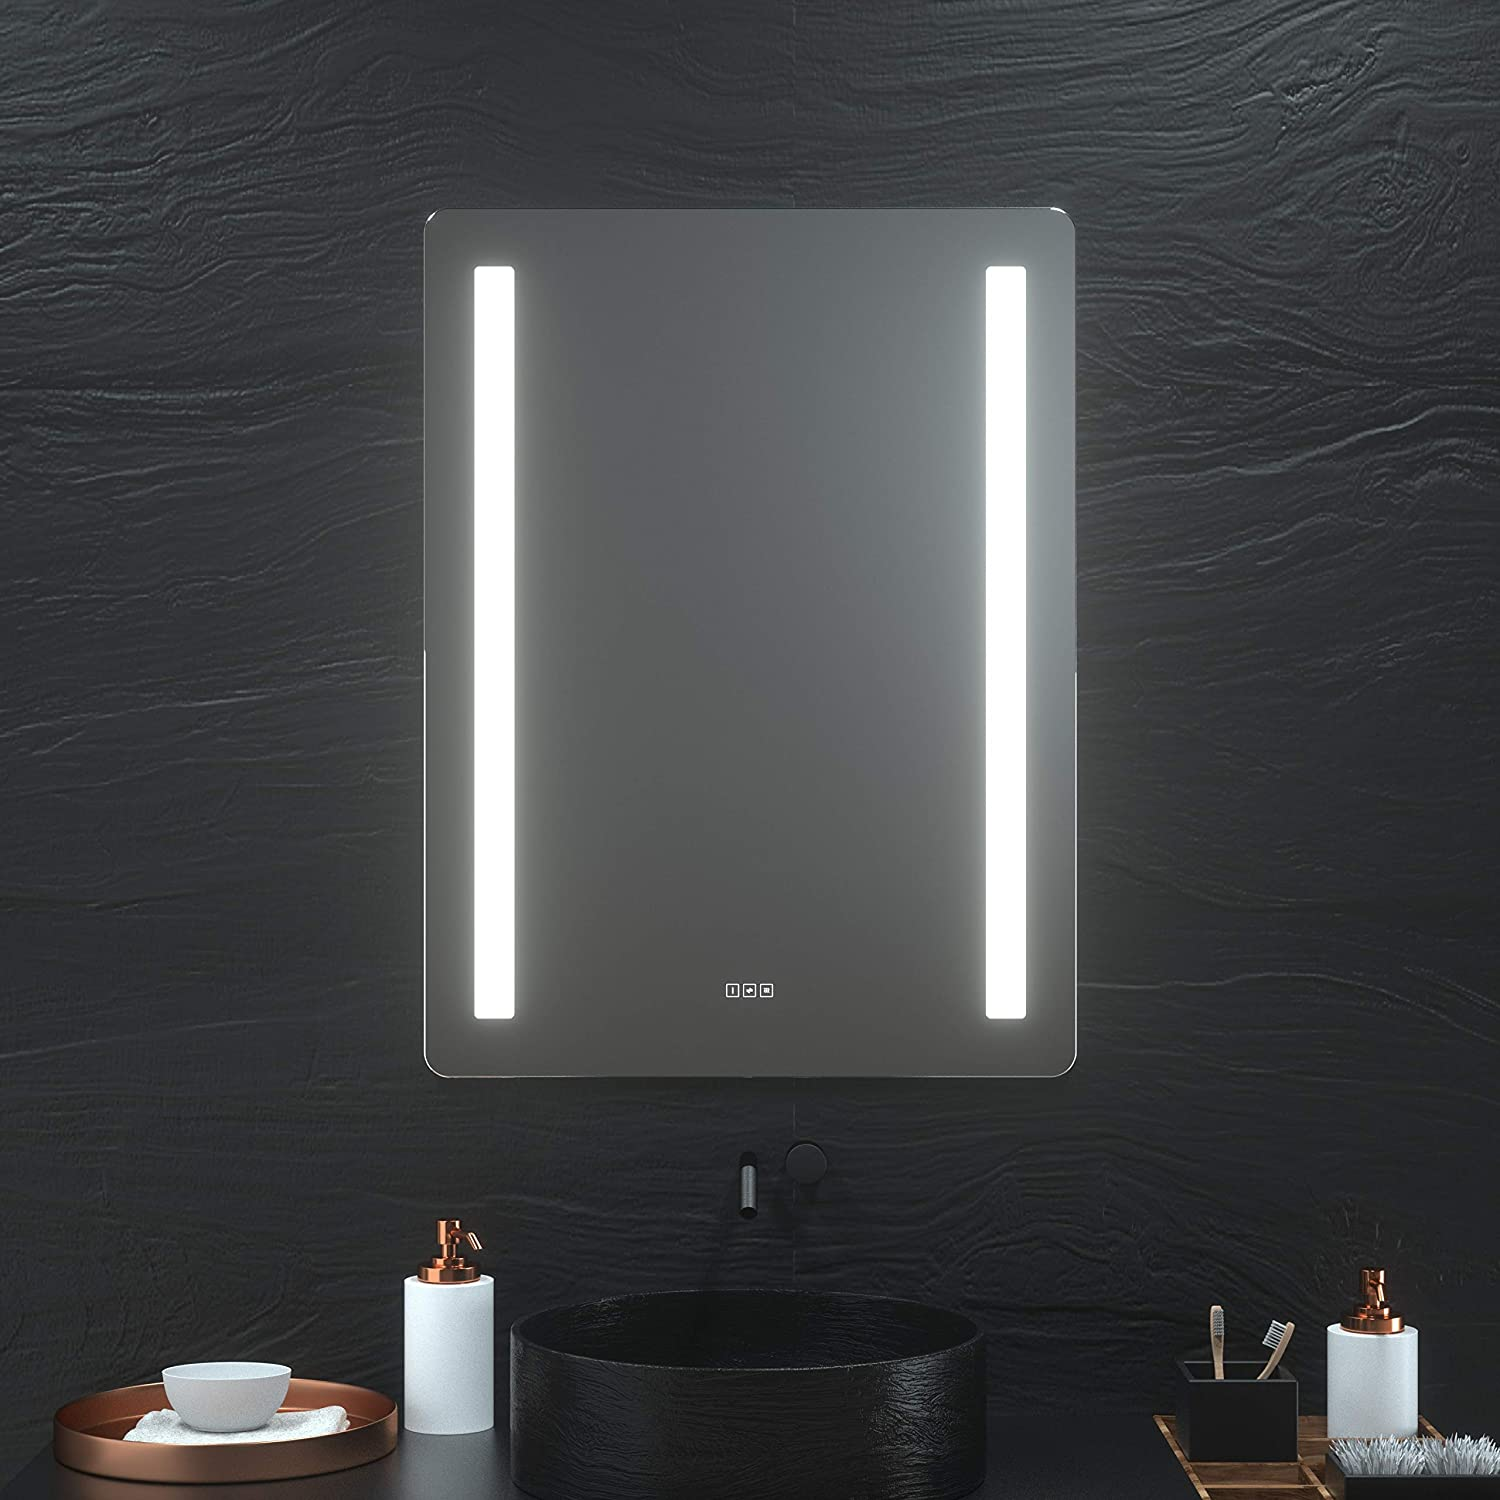 Hauschen 30 X 40 Inch Led Lighted Bathroom Wall Mounted Mirror With Cri 95 Adjustable Color Temperature Anti Fog Separately Control Dimmable Memory Touch Button Ip44 Waterproof Bathroom Accessories Bathroom Mirrors